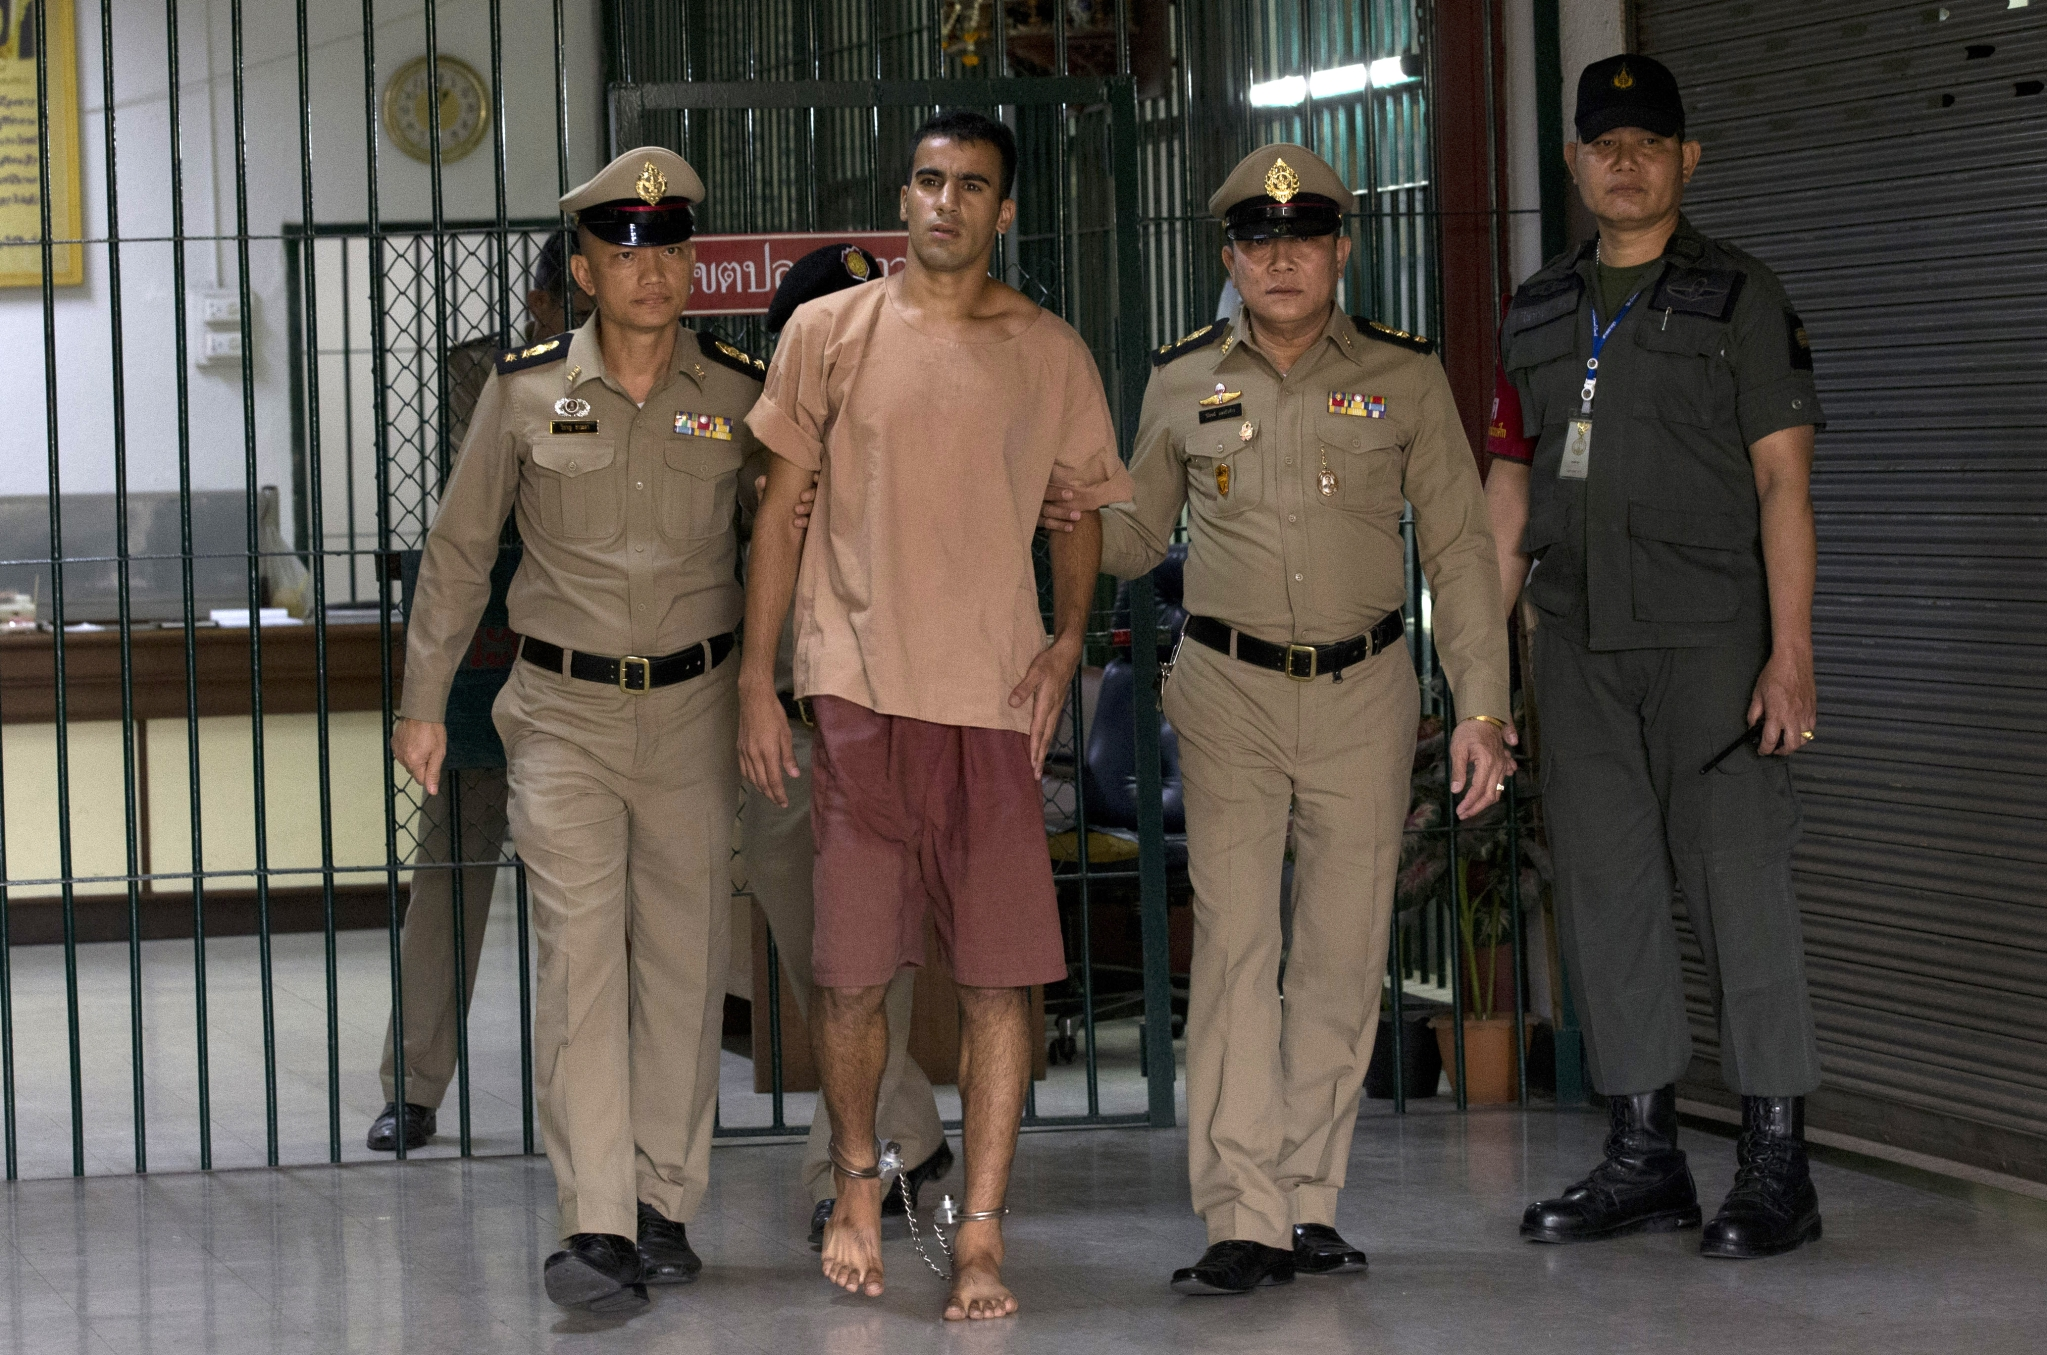 Thai court orders release of Bahrain refugee soccer player